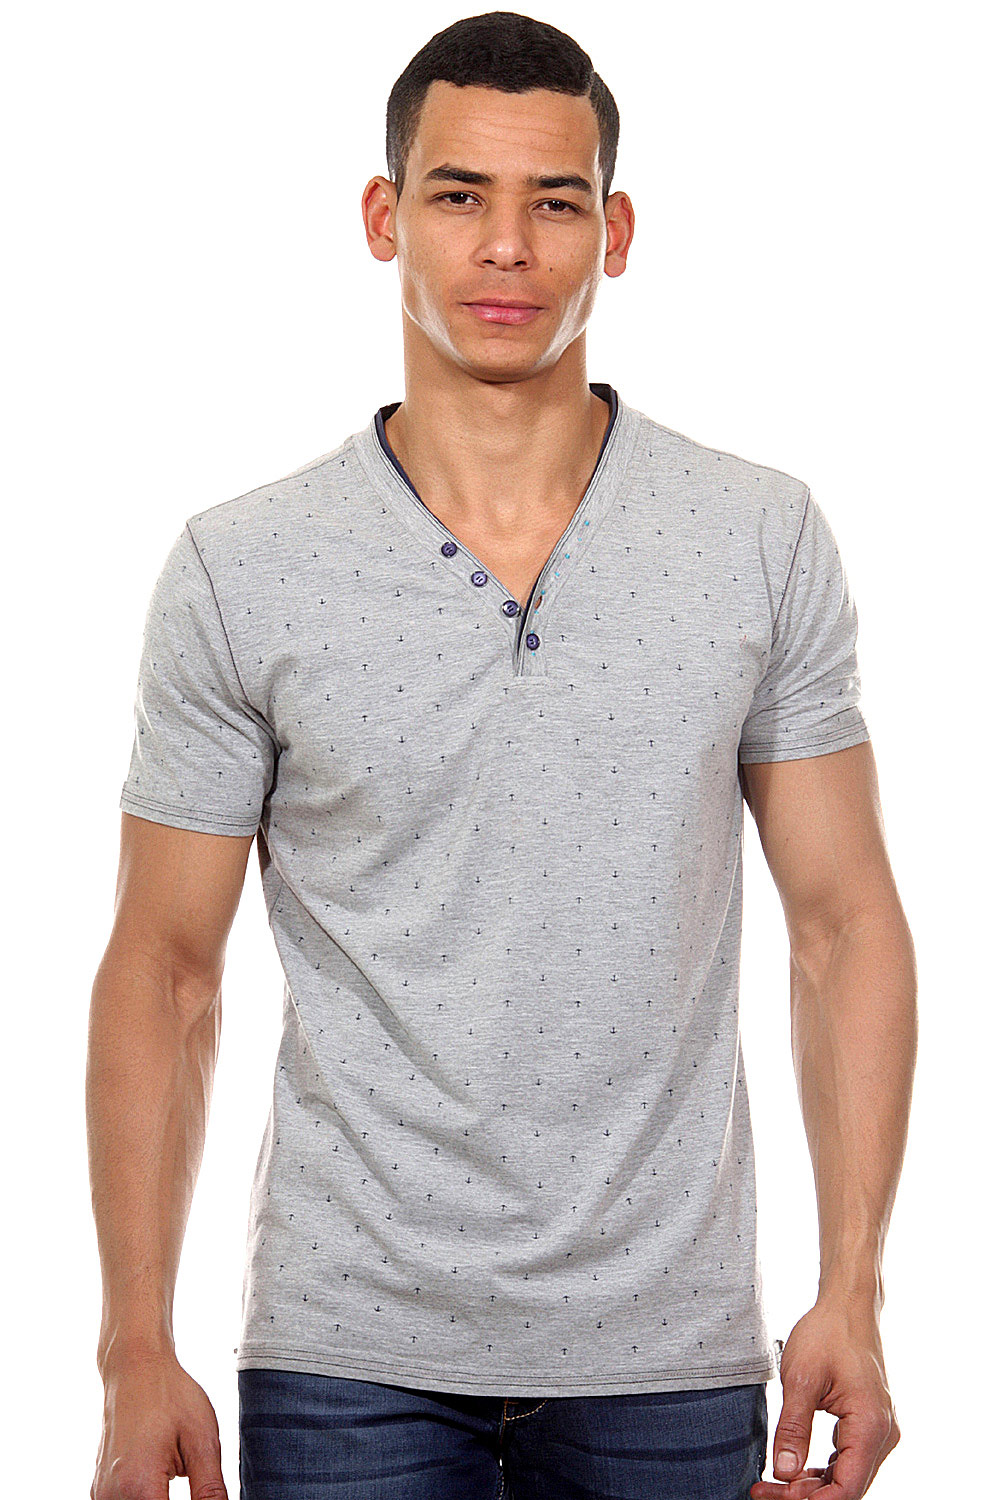 MCL henley t-shirt slim fit at oboy.com